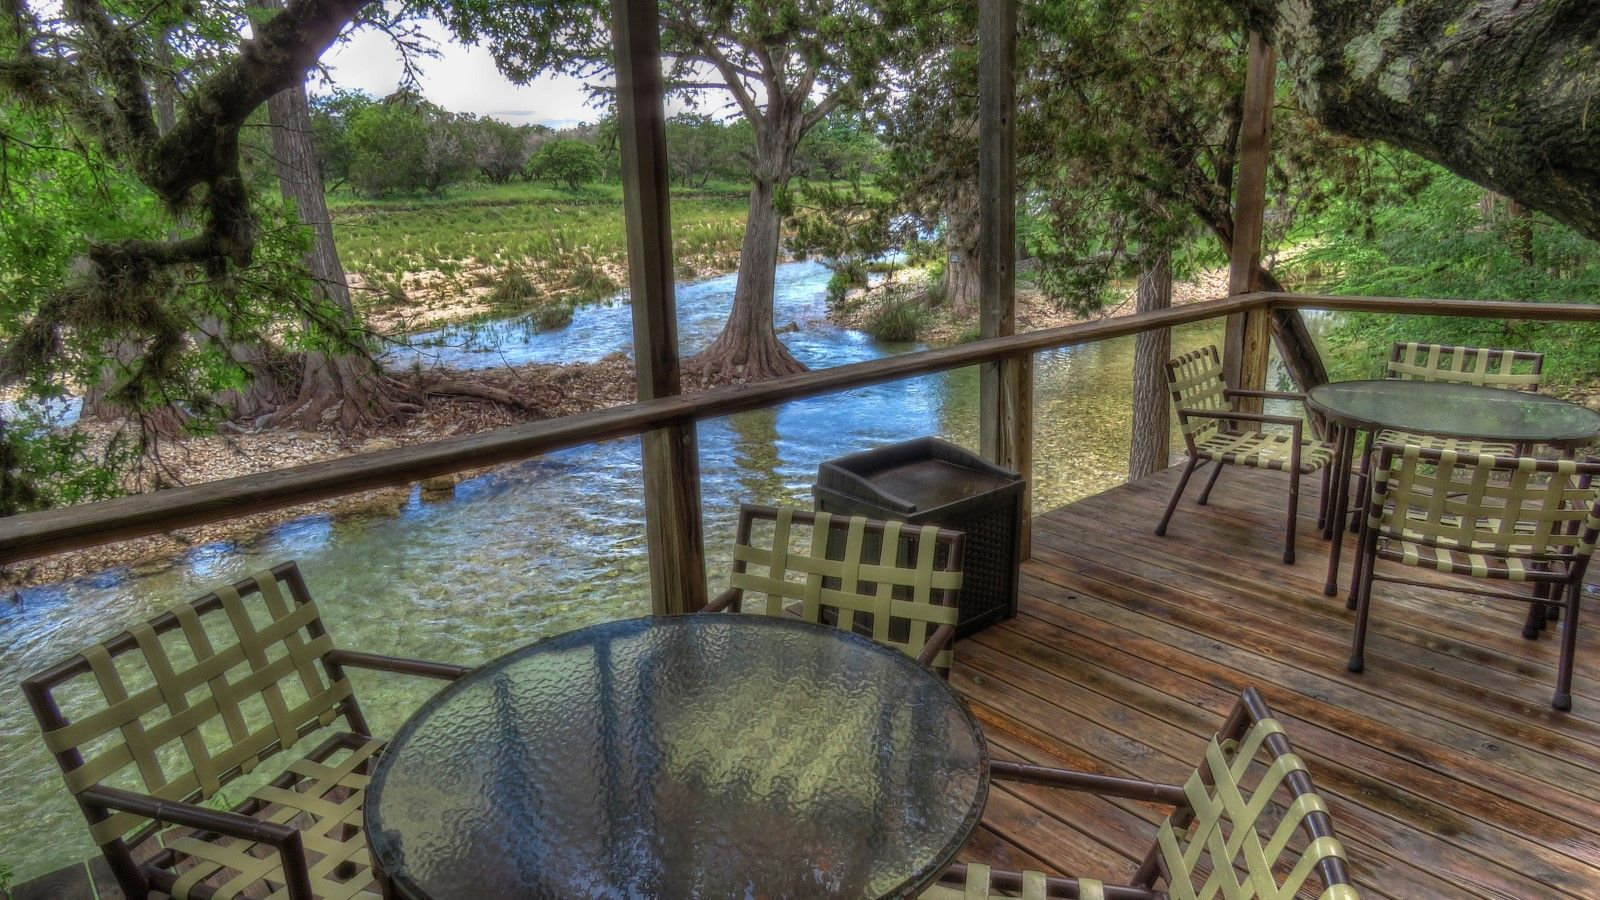 Fully Furnished Family Friendly Houses And Cabins In The Texas Hill Country Texas Vacation Spots Cabins In Texas Frio River Texas